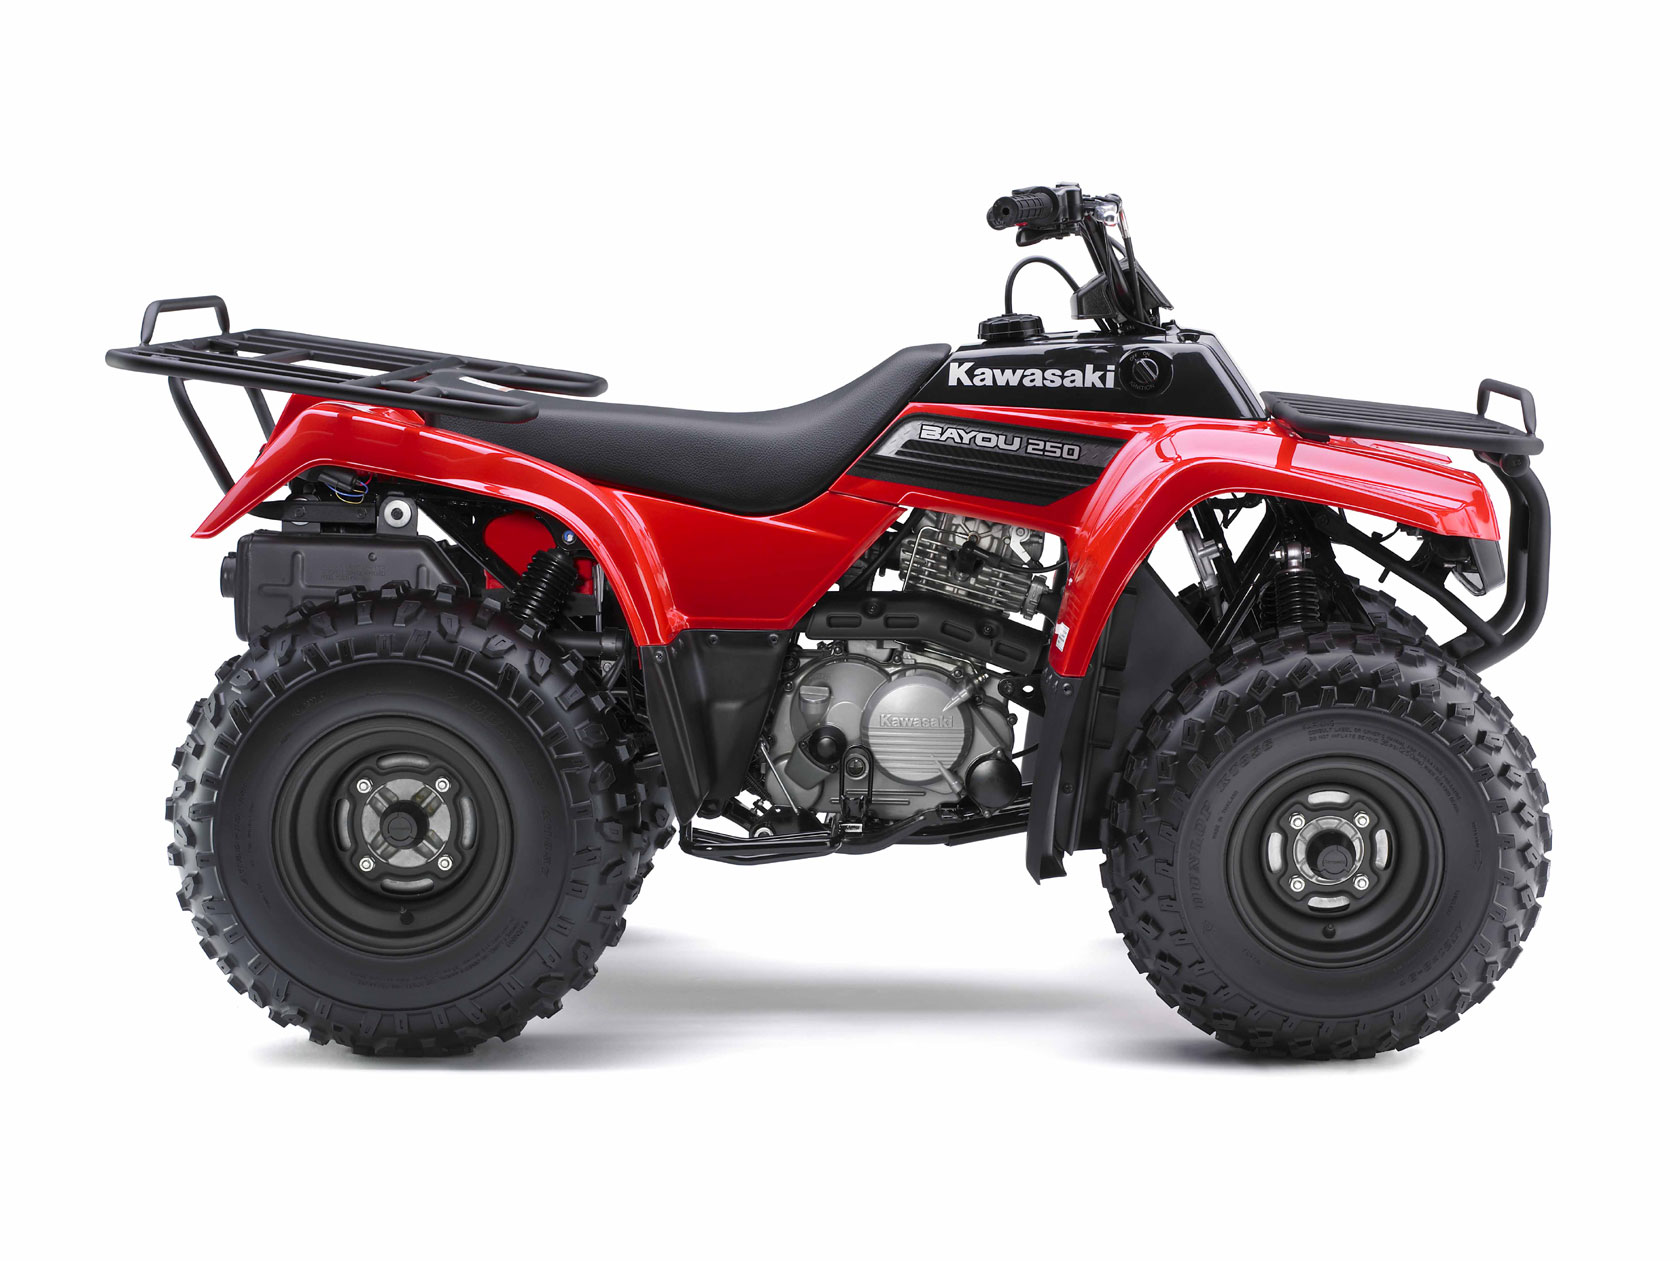 Kawasaki Brute 650 Wiring Diagram | Wiring Liry on